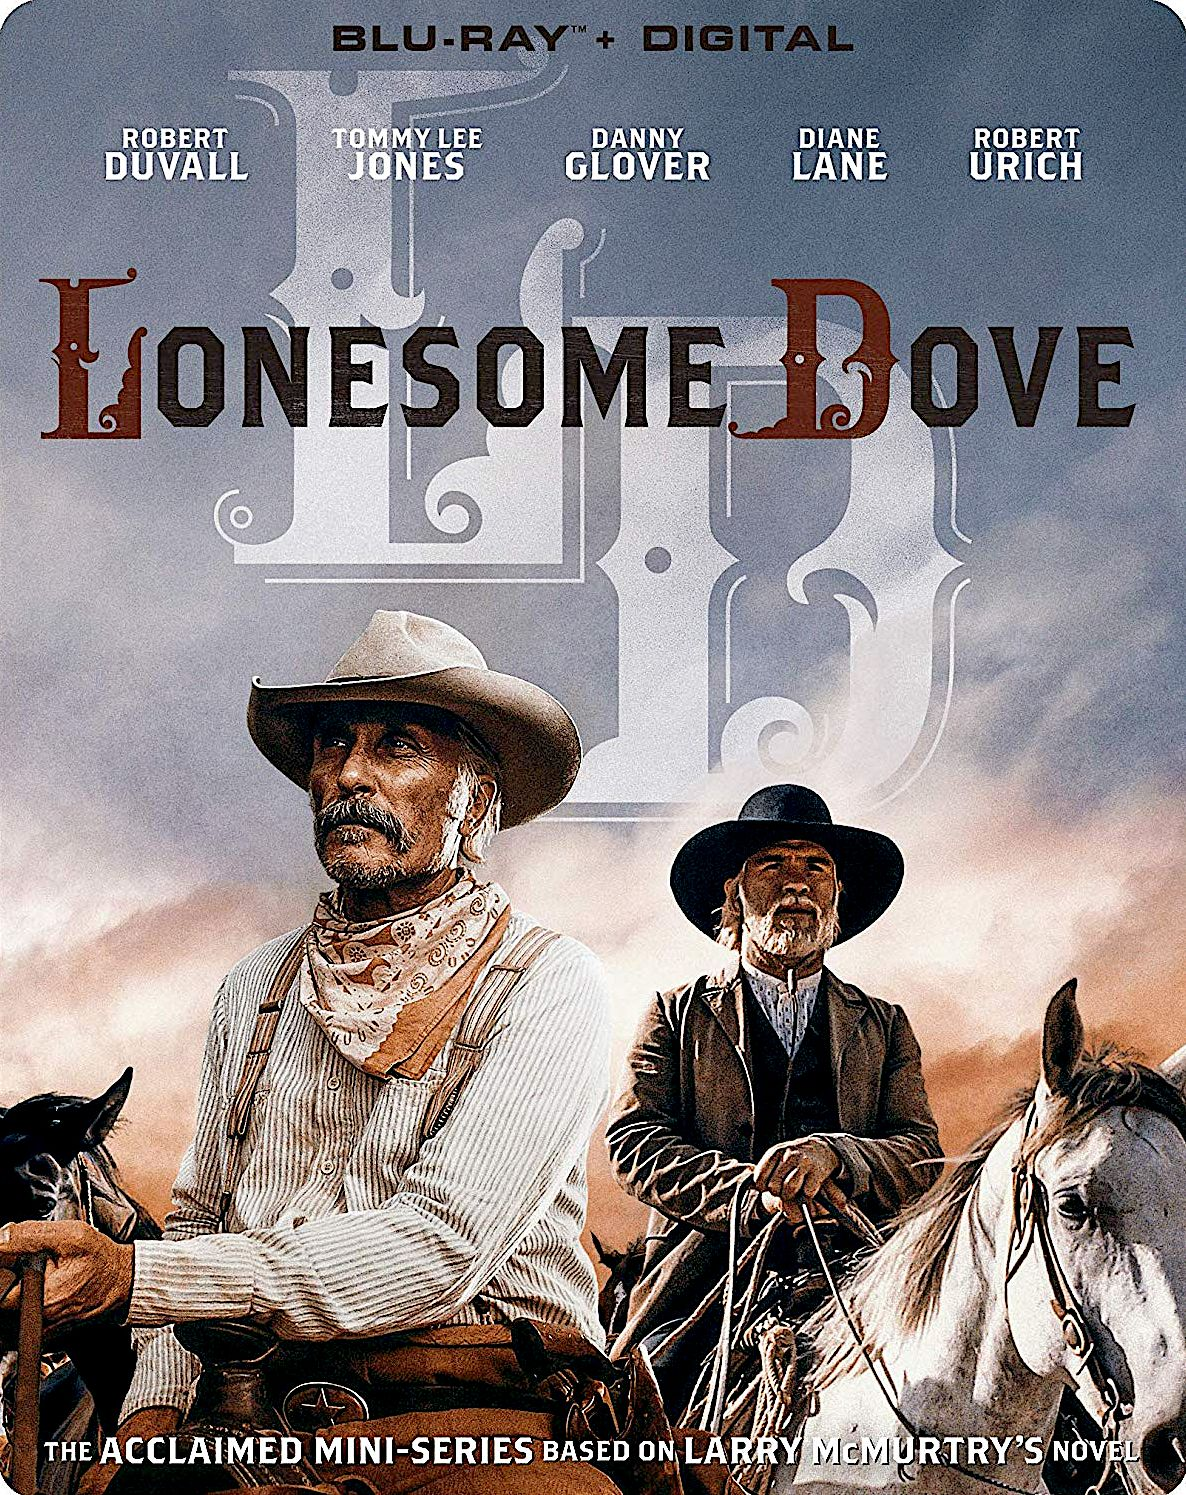 BLU-RAY STEELBOOK (MILL  EDITION DOVE LONESOME LIMITED